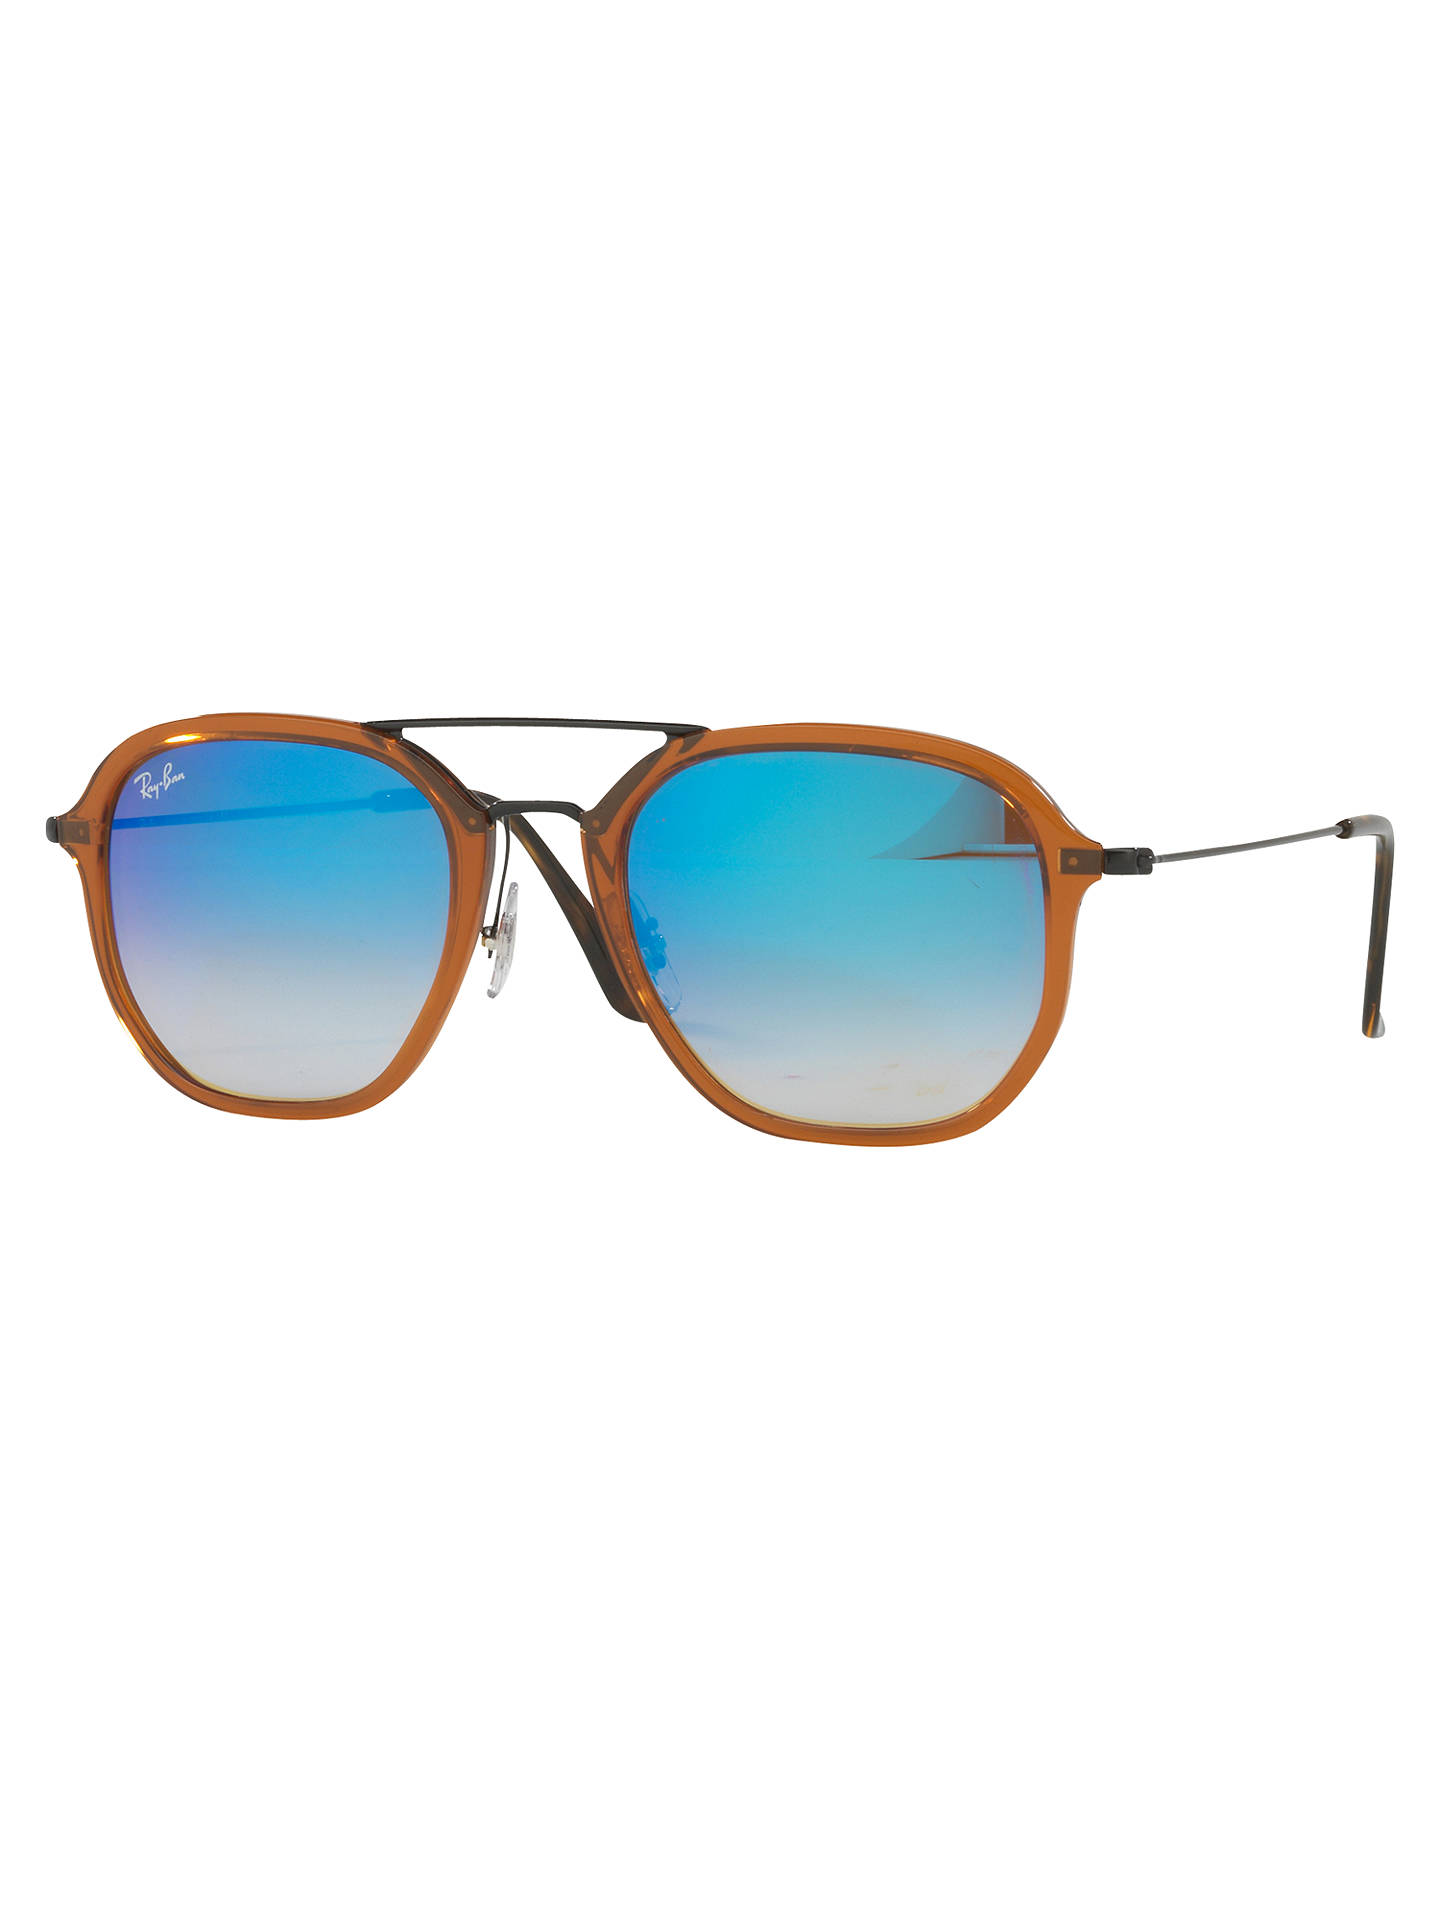 2d4ae5073ea Ray-Ban RB4273 Square Sunglasses at John Lewis   Partners